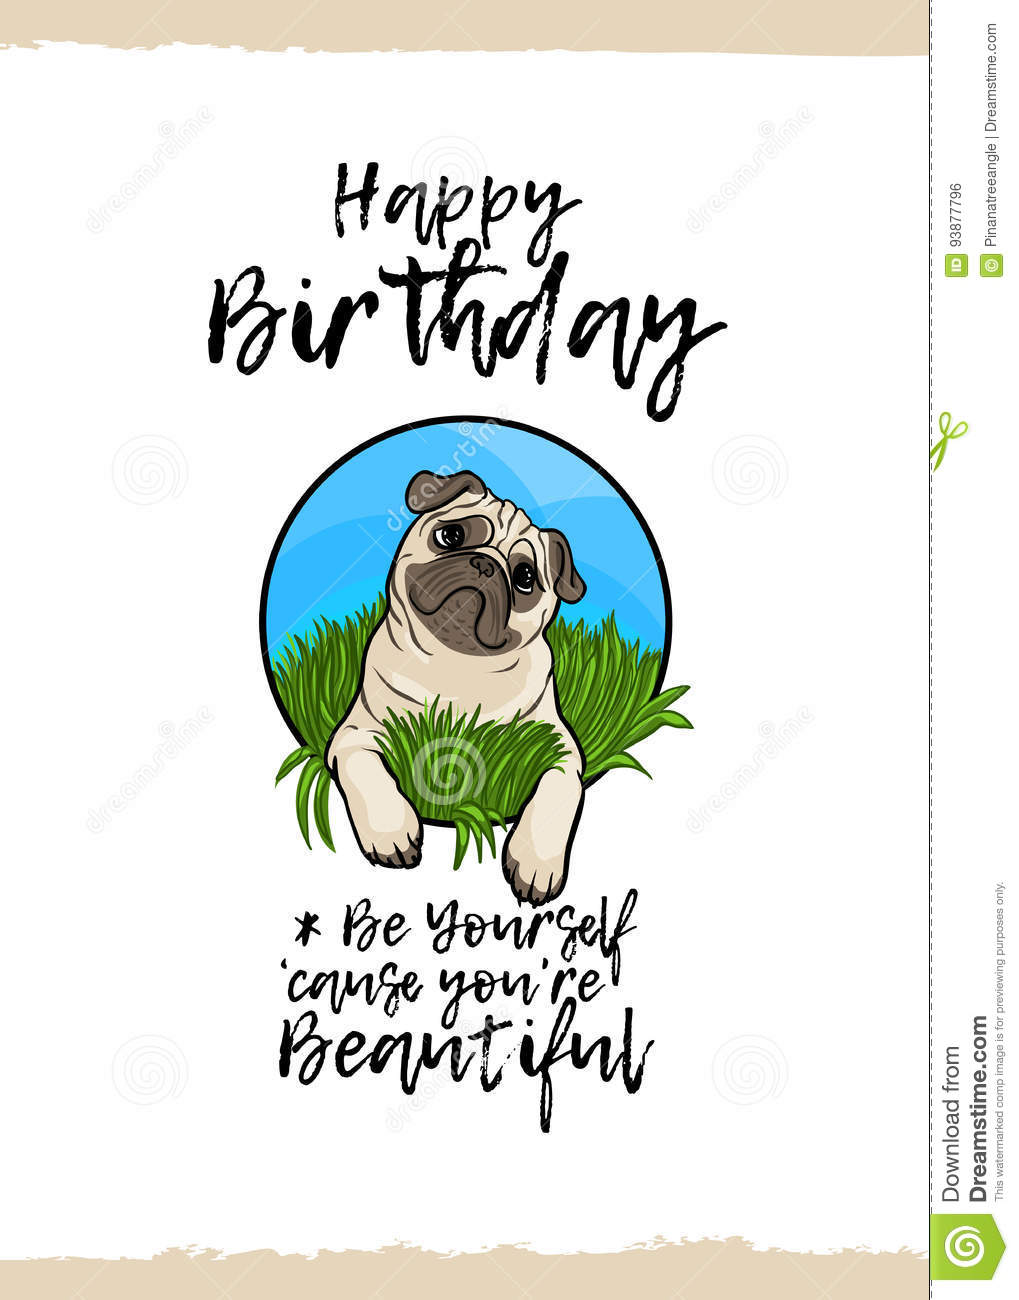 Happy Birthday Be Yourself Because You Are Beautiful Greeting Card With A Cute Animal And Kind Wish Cartoon Style Suitable For Kids Congratulations